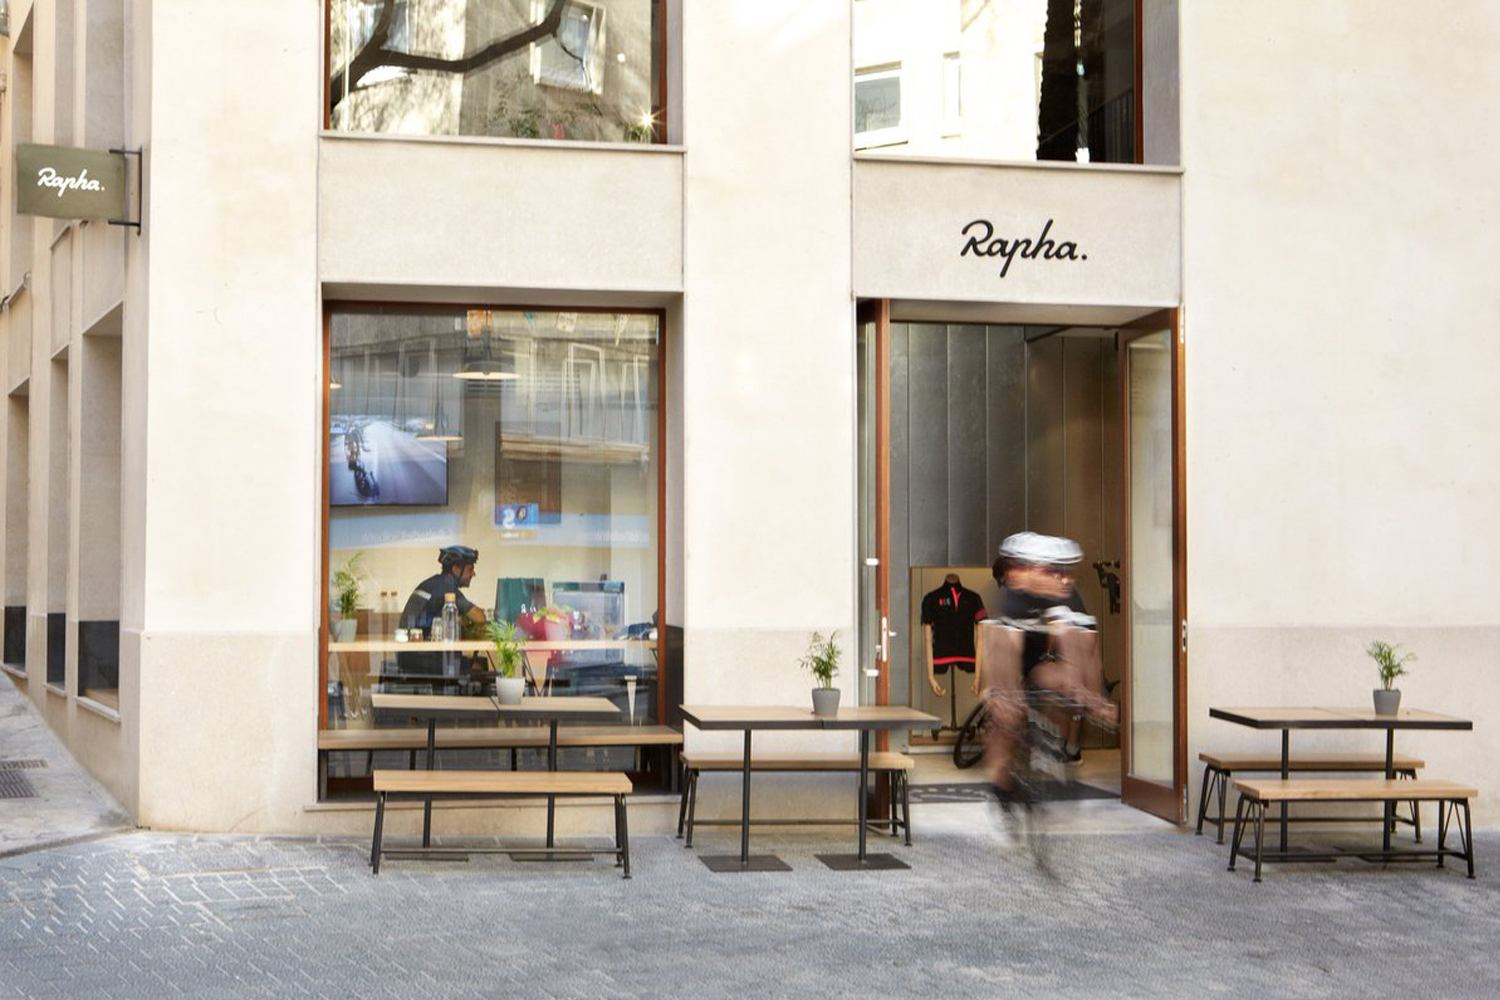 Exterior of the Rapha Clubhouse in Mallorca. A cyclist is inside and another is riding nearby.